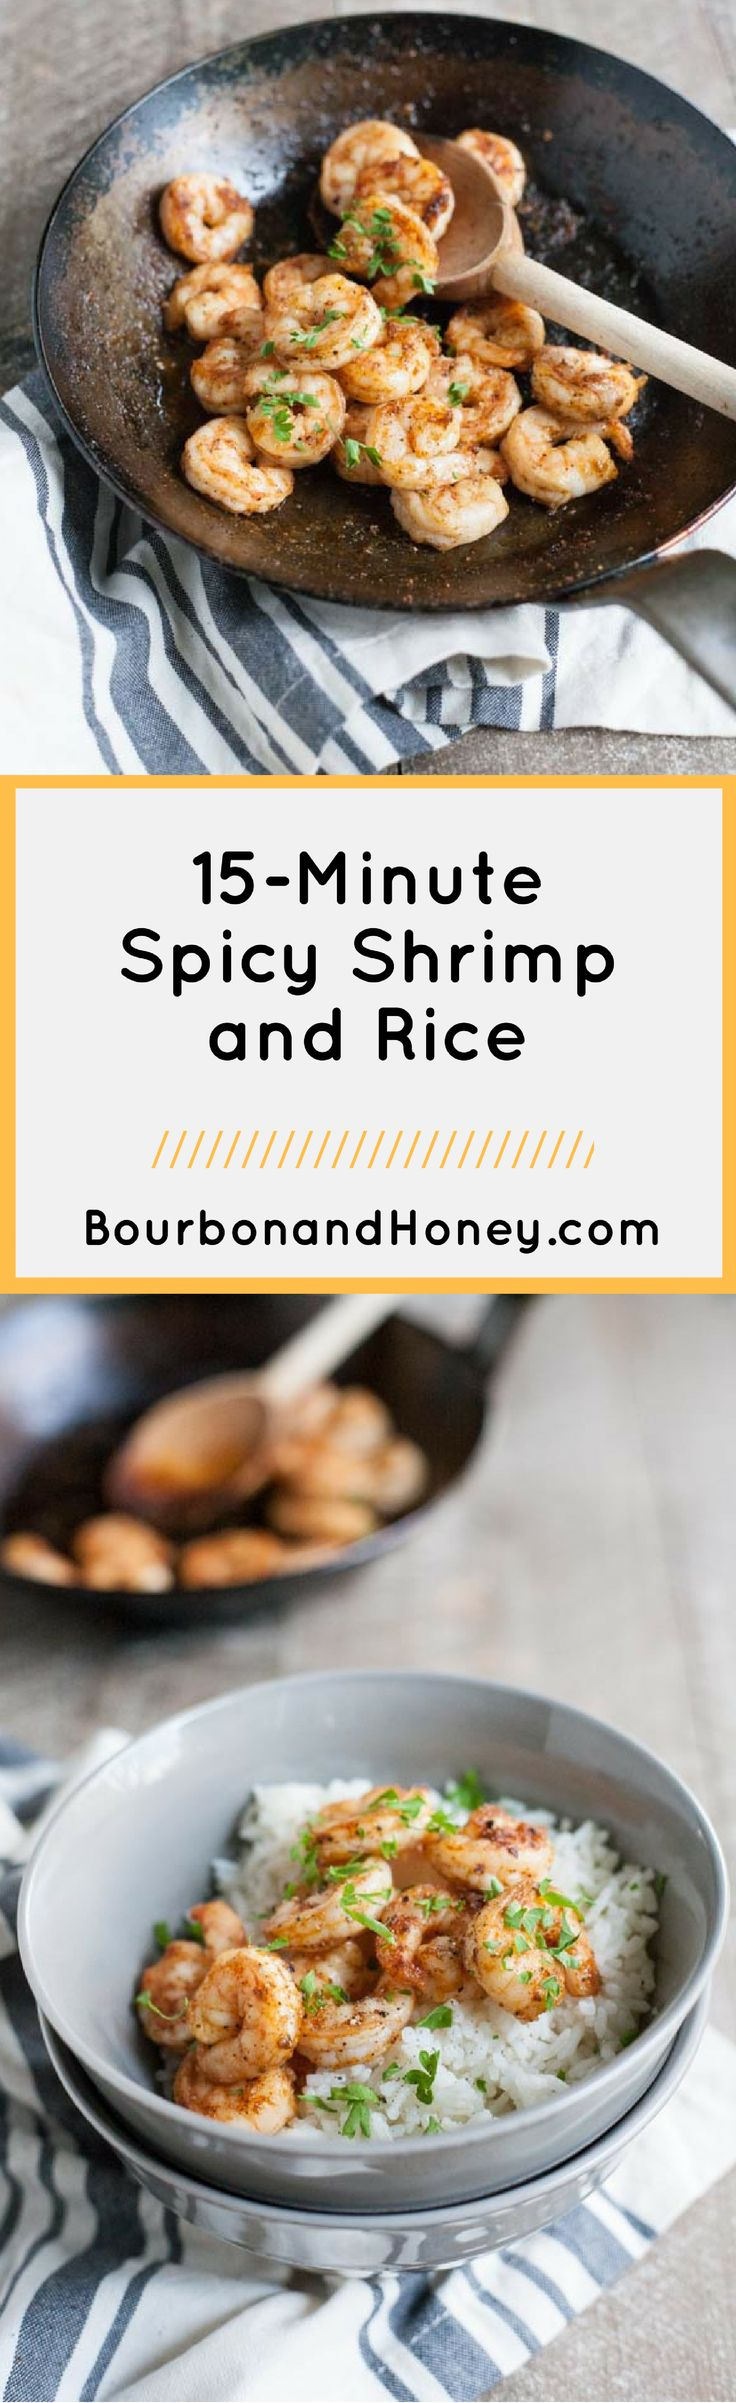 15-Minute Spicy Shrimp and Rice | BourbonandHoney.com -- This super simple 15-minute spicy shrimp and rice is one of the best last minute dinner recipes around! Bonus, it's even gluten free!